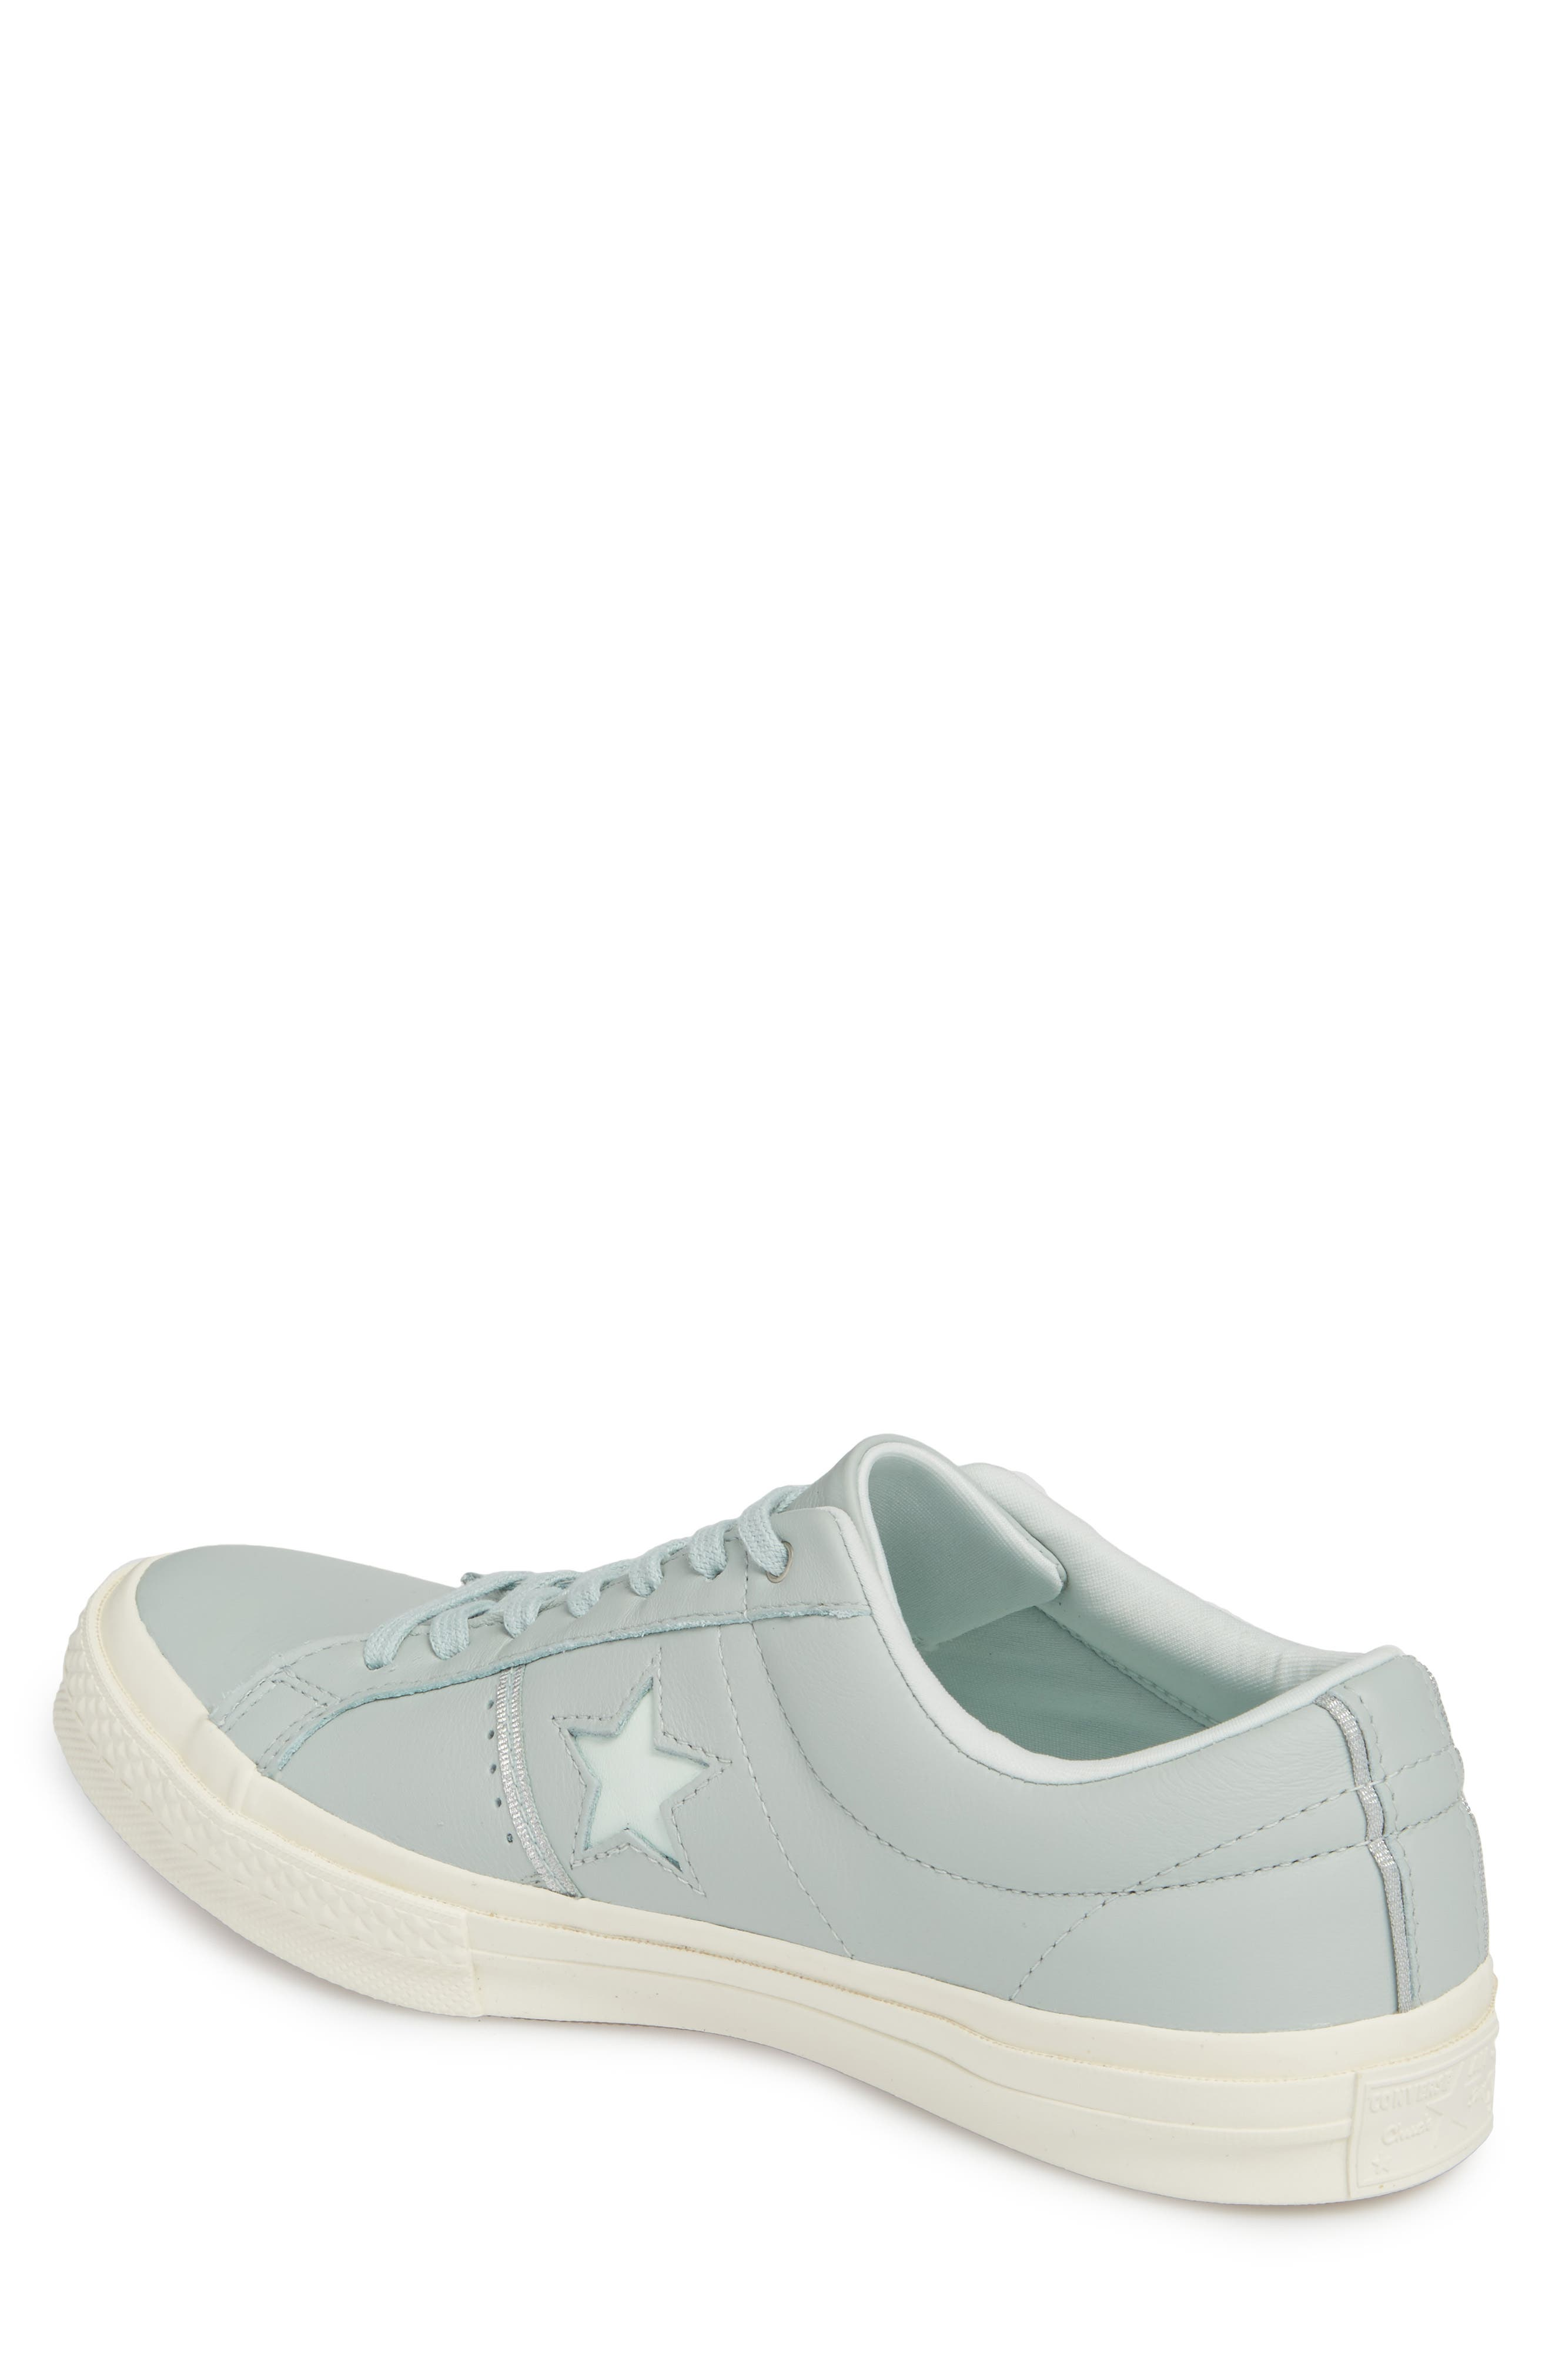 Chuck Taylor<sup>®</sup> One Star Piping Sneaker,                             Alternate thumbnail 2, color,                             026